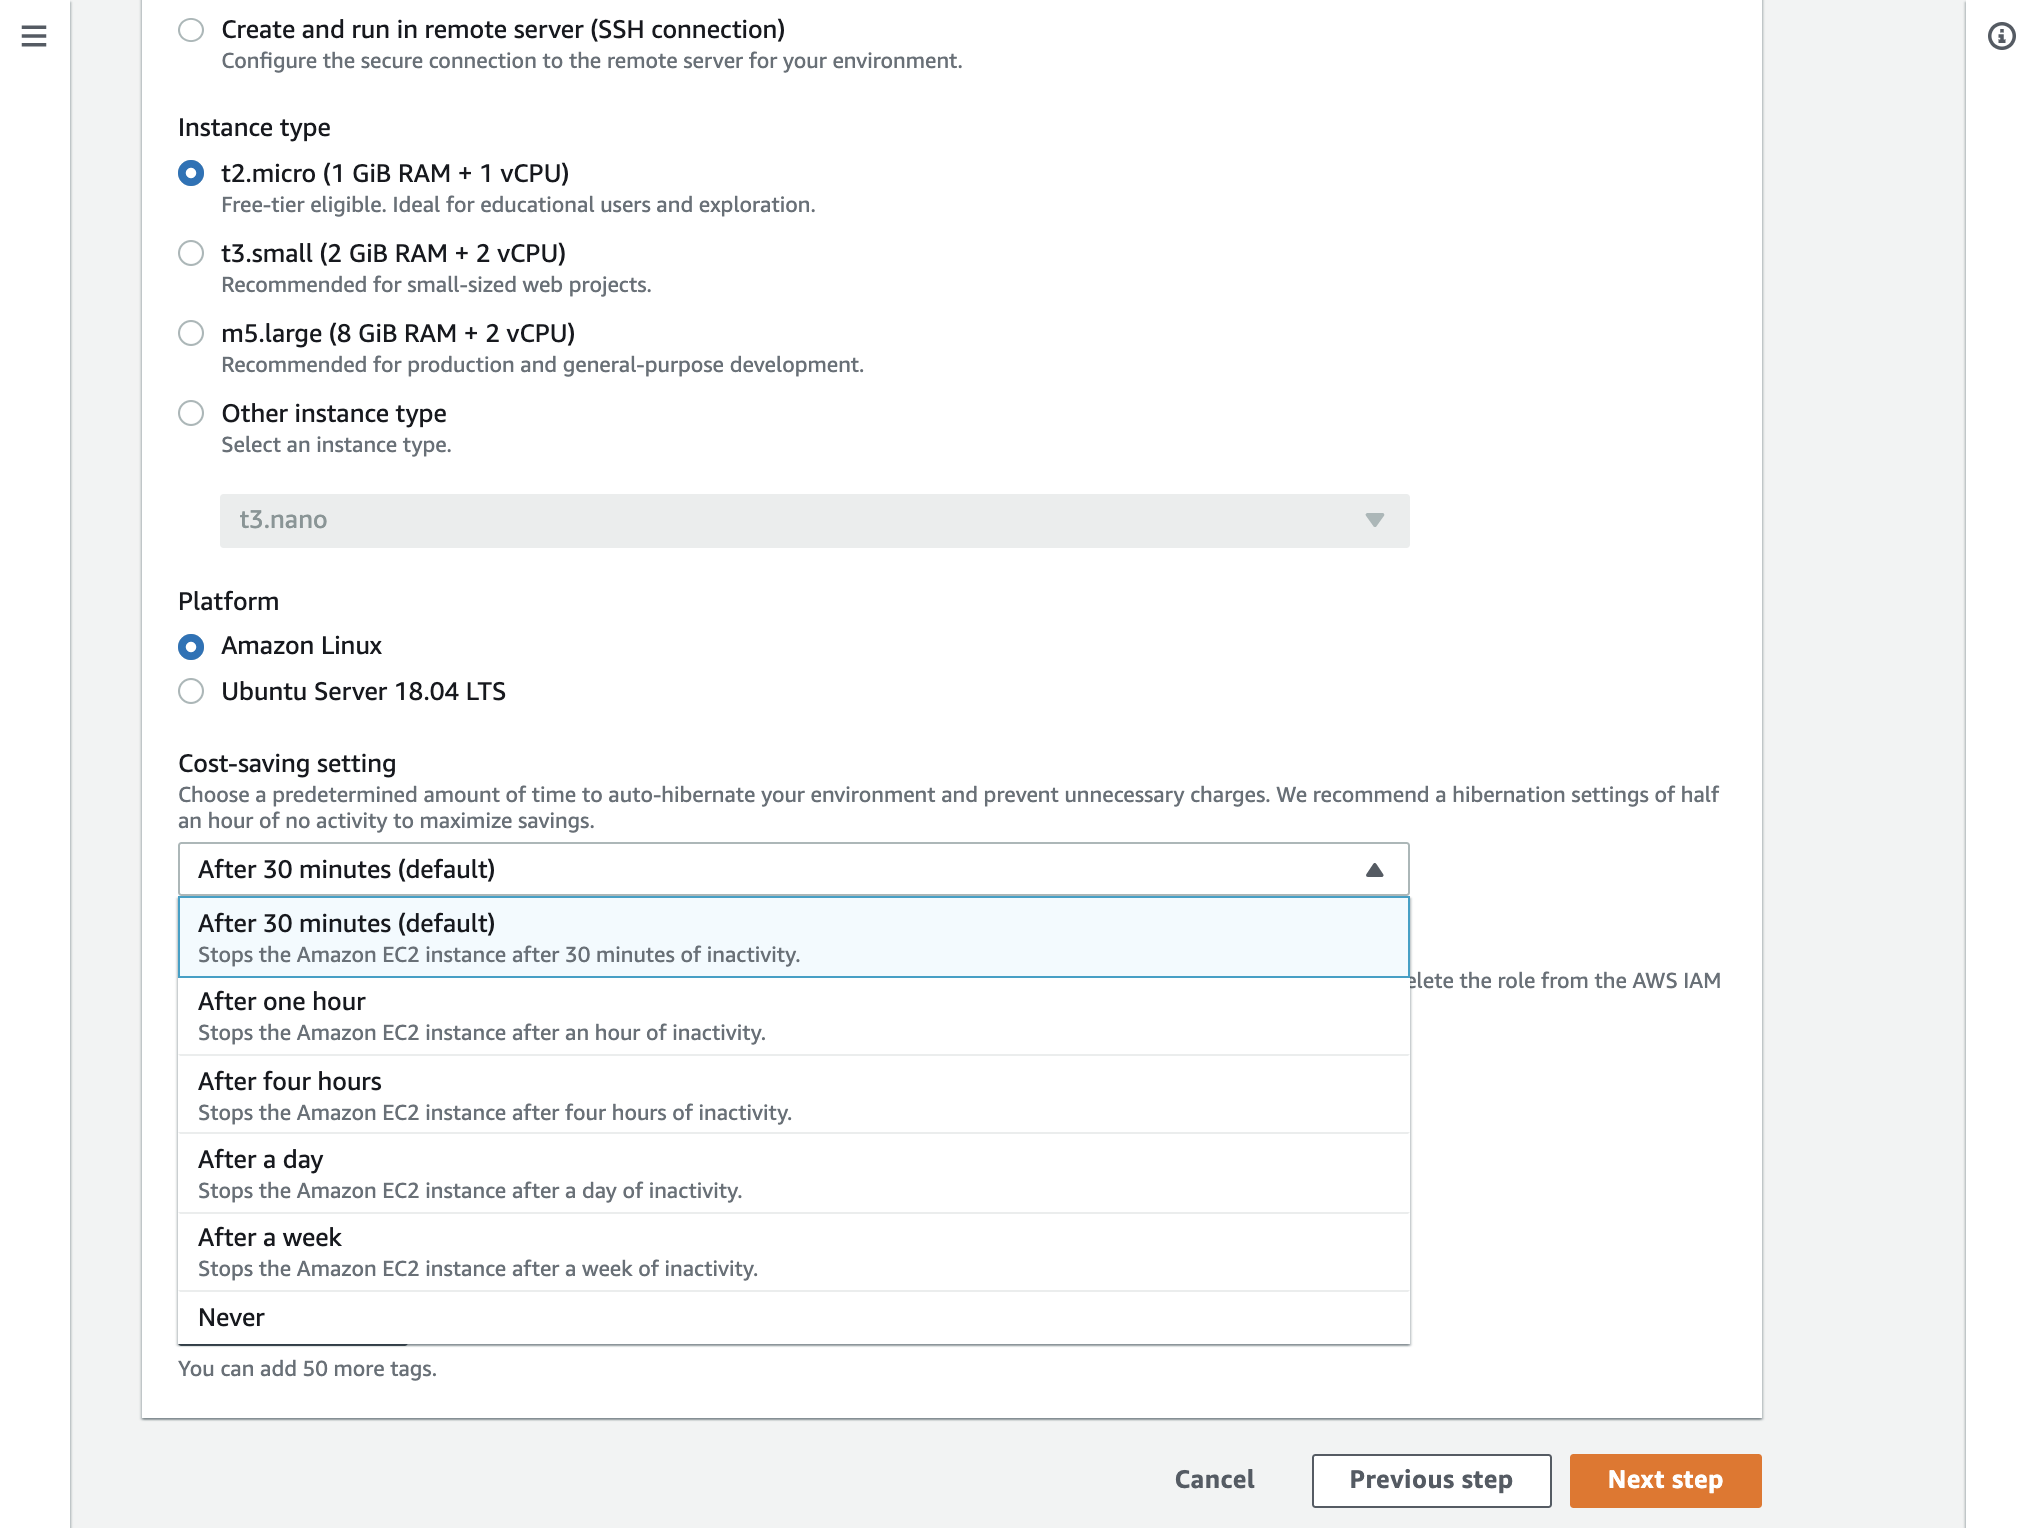 Image displays how to change cost-saving setting for EC2 hibernation of the Cloud9 environment.